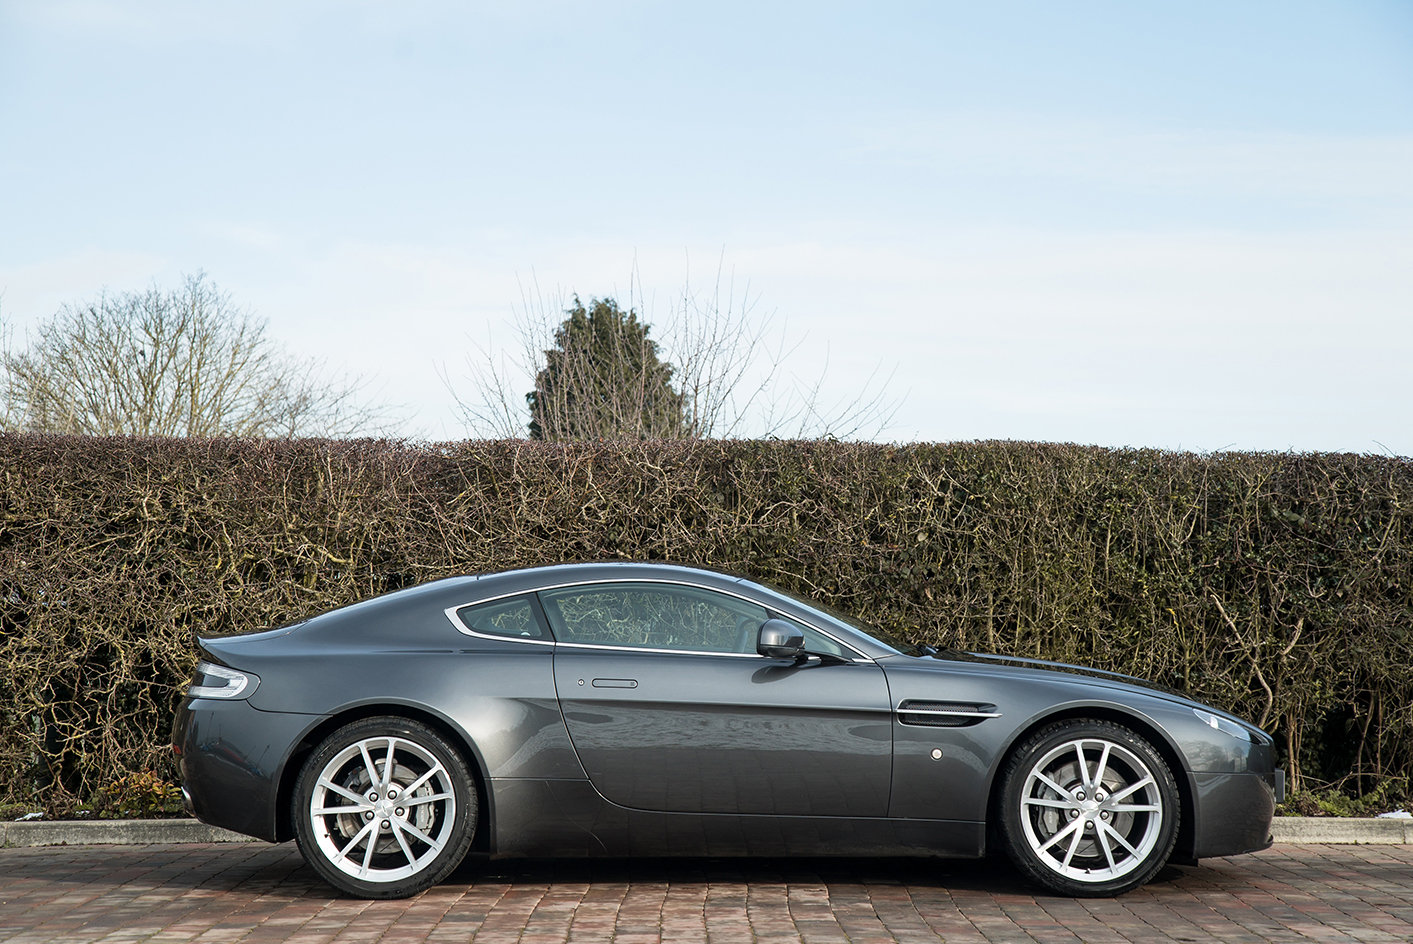 2011 Aston Martin Vantage 4.7 Sportshift Coupe For Sale (picture 1 of 6)